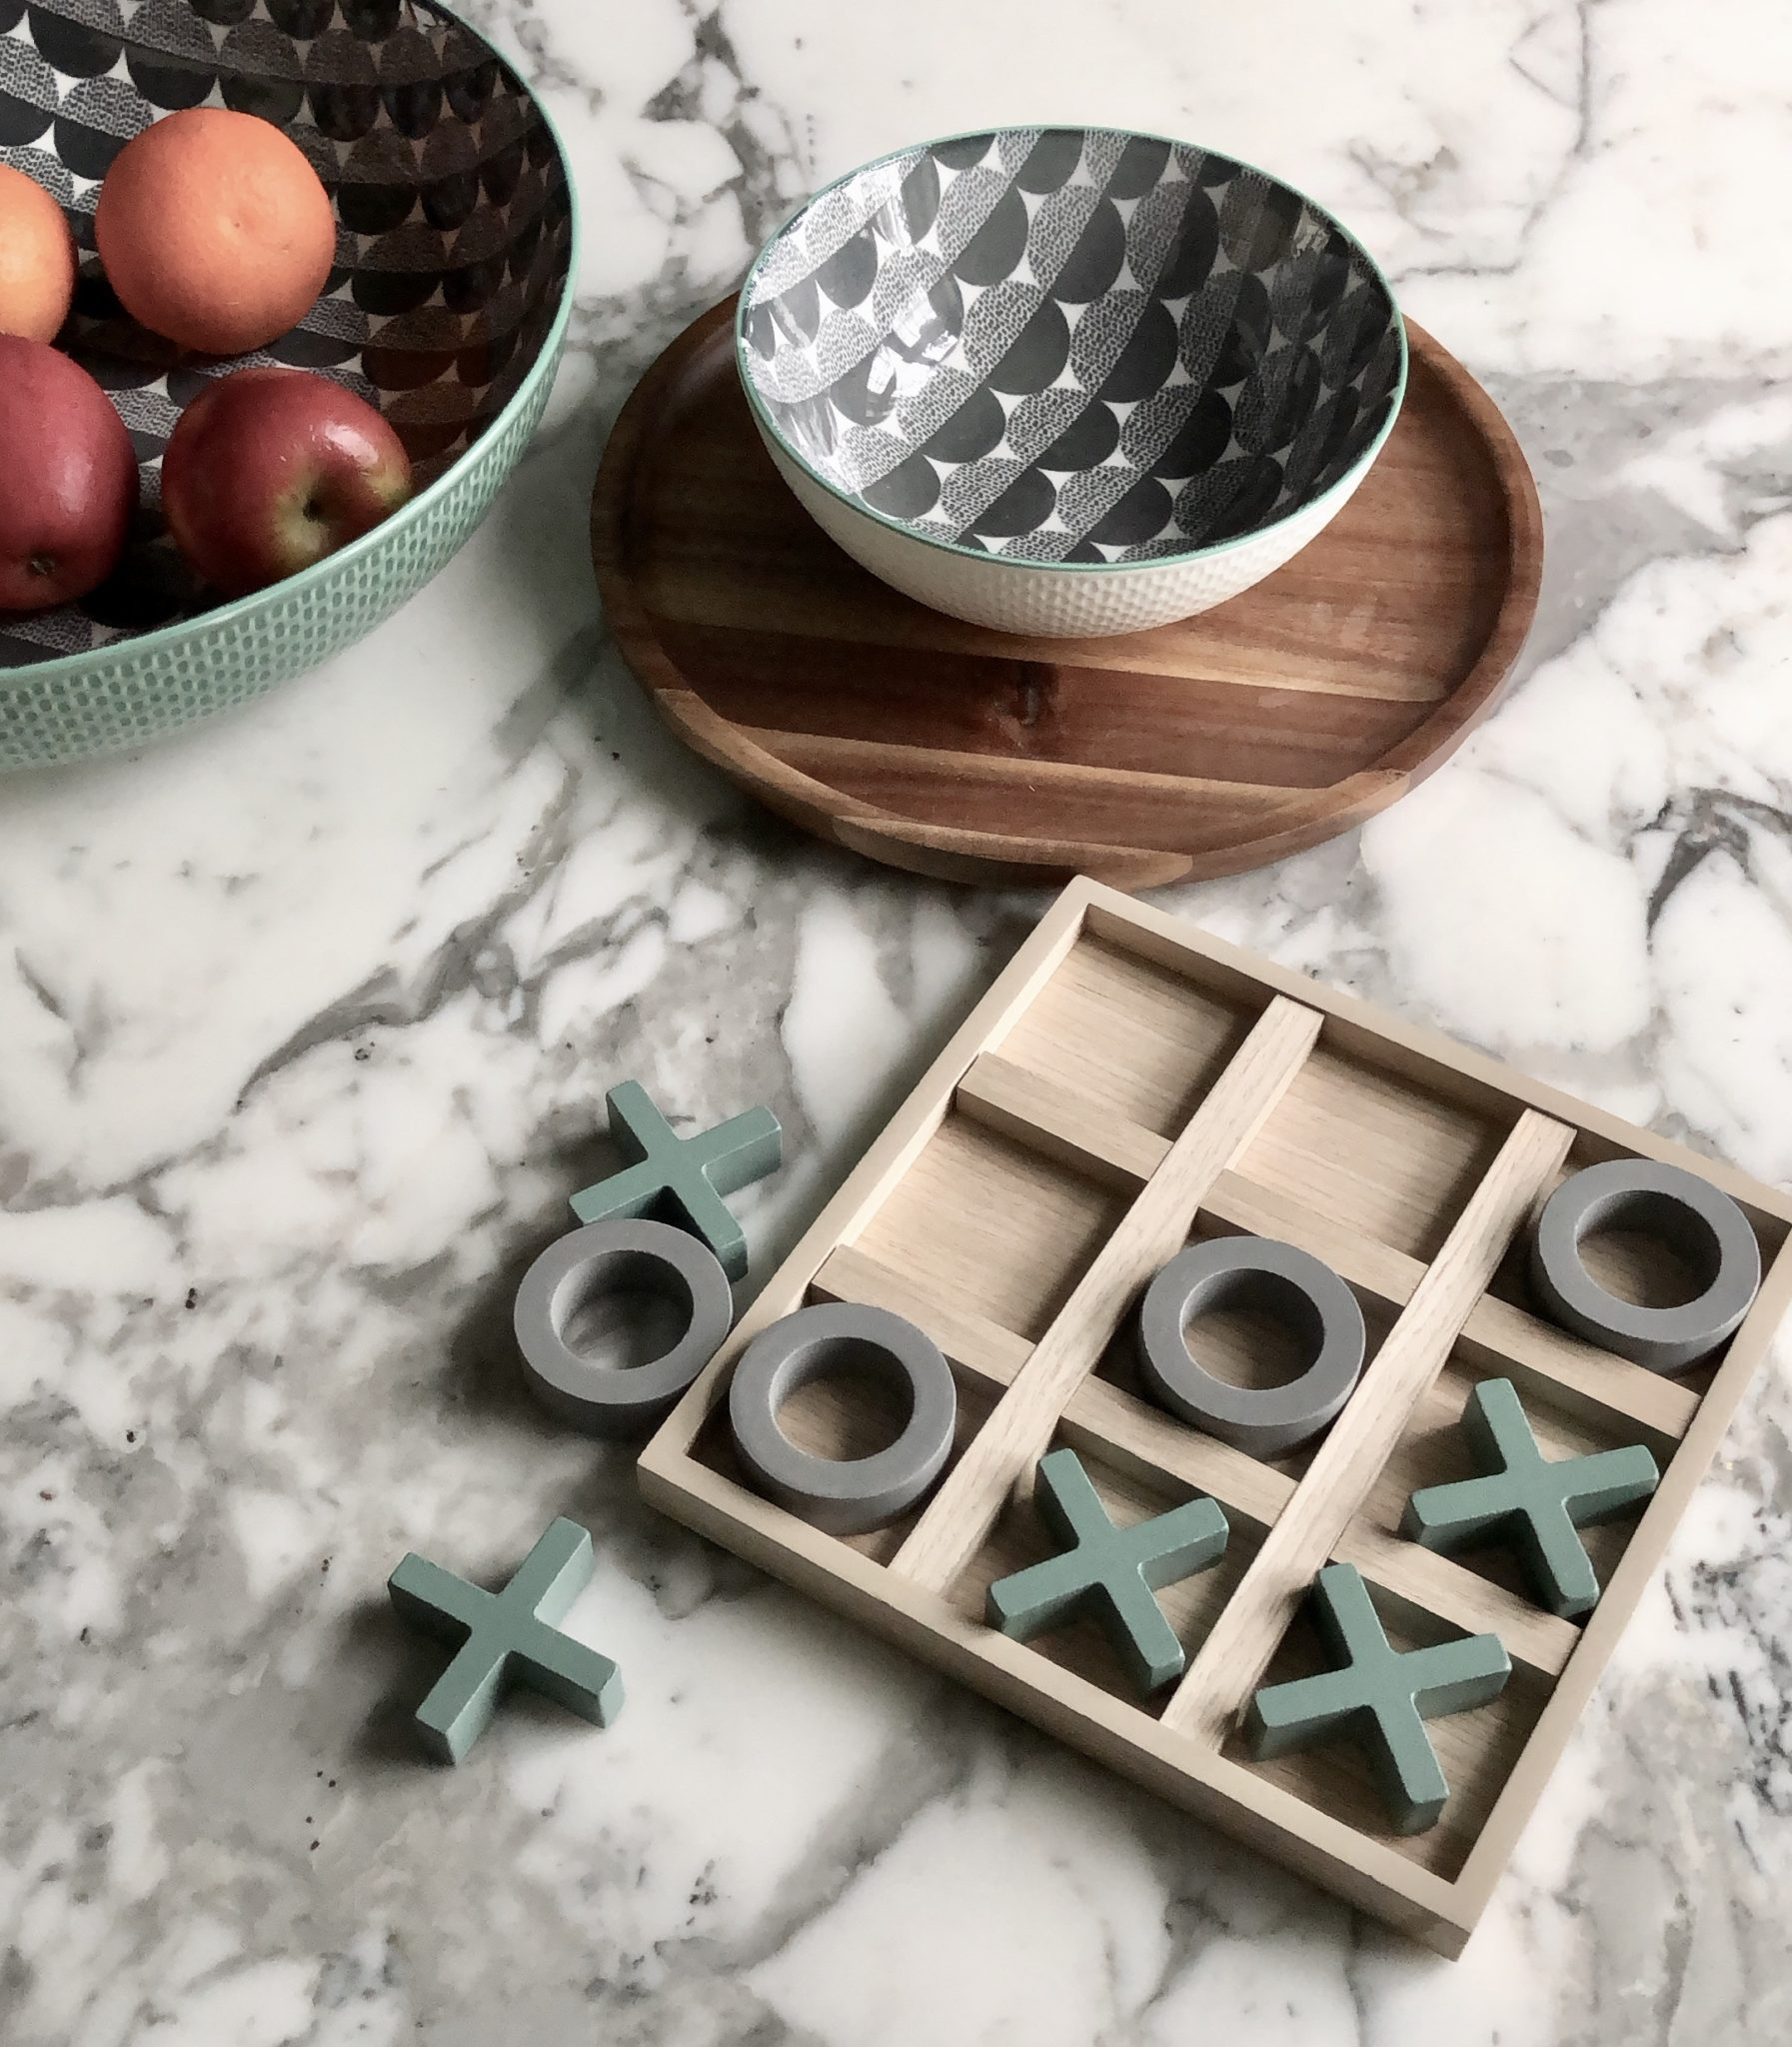 Fruit bowls, tray and noughts and crosses set, all from the Sainsbury's Home collection.